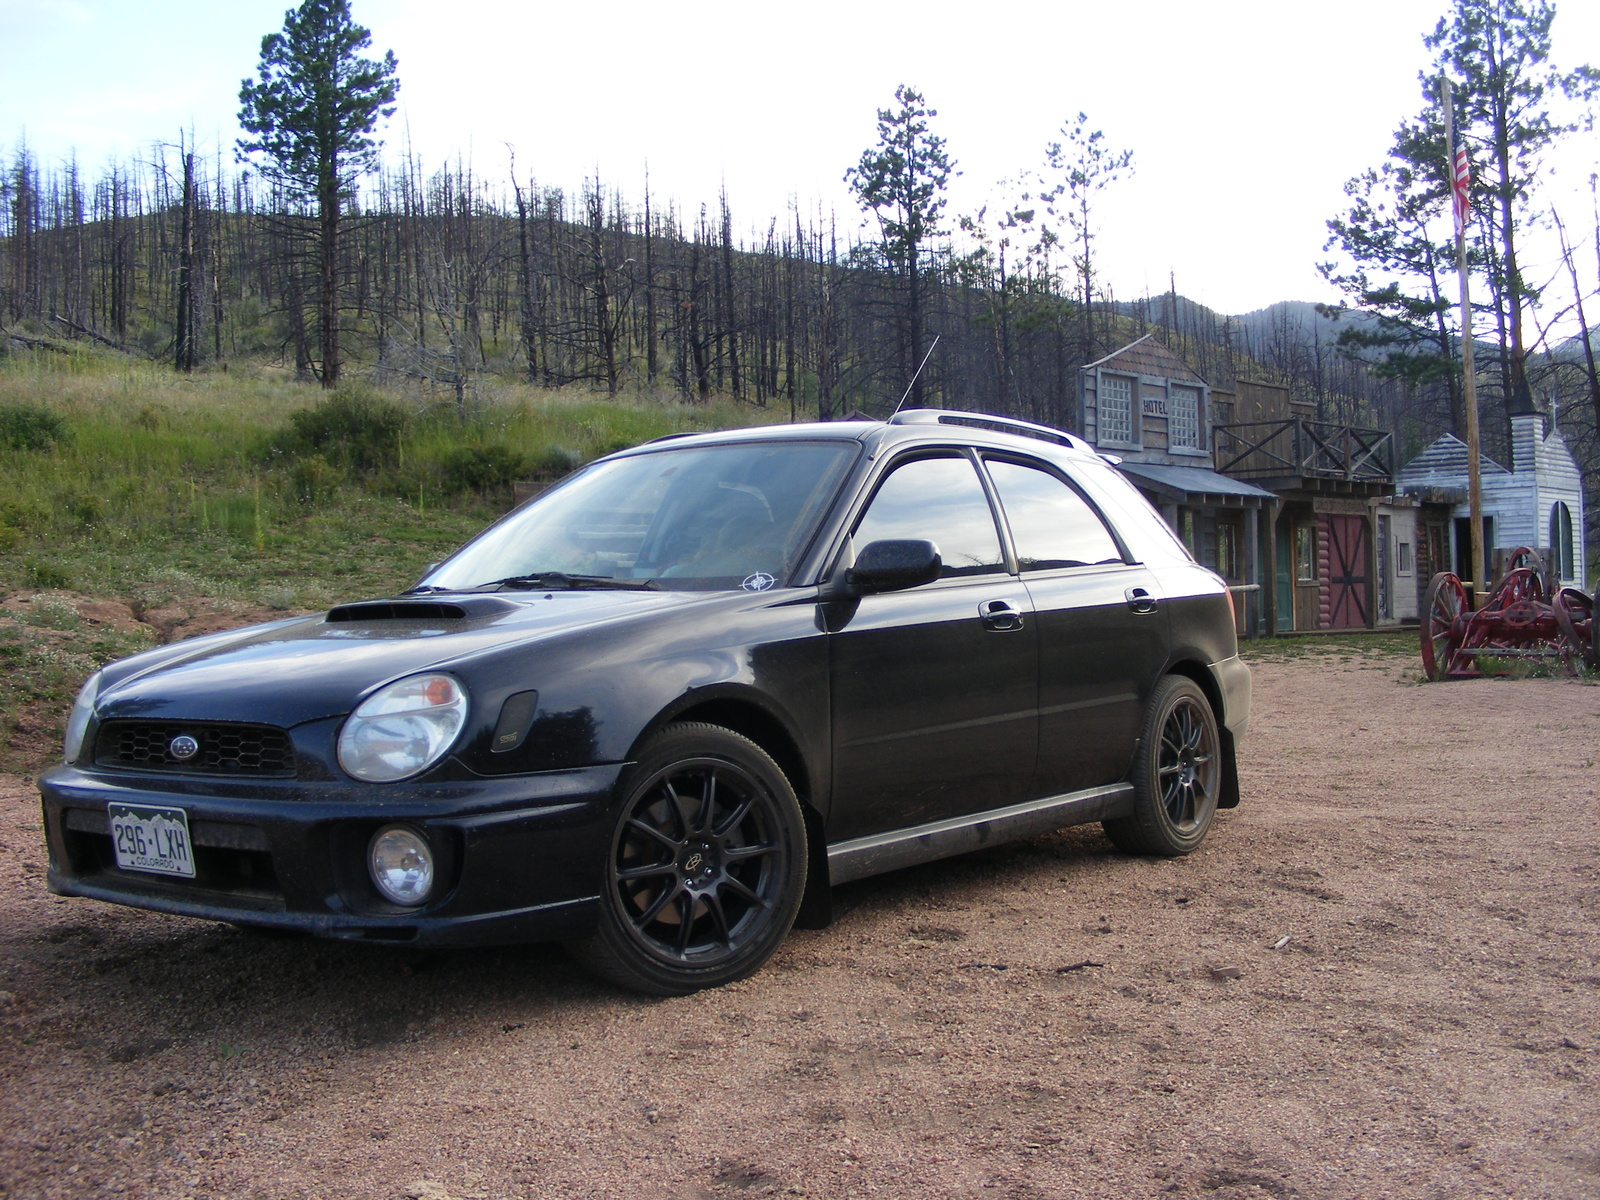 Topworldauto photos of subaru impreza wrx wagon photo galleries 2002 subaru impreza wrx wagon picture exterior vanachro Images